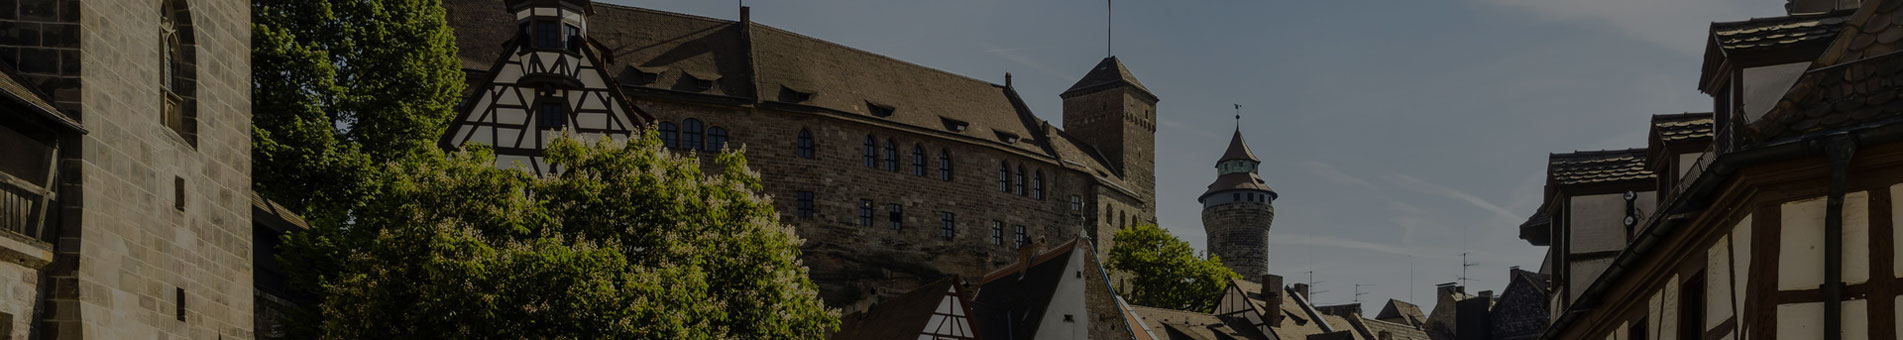 NUREMBERG INDUSTRY EVENTS YOU SHOULD ATTEND RIGHT NOW